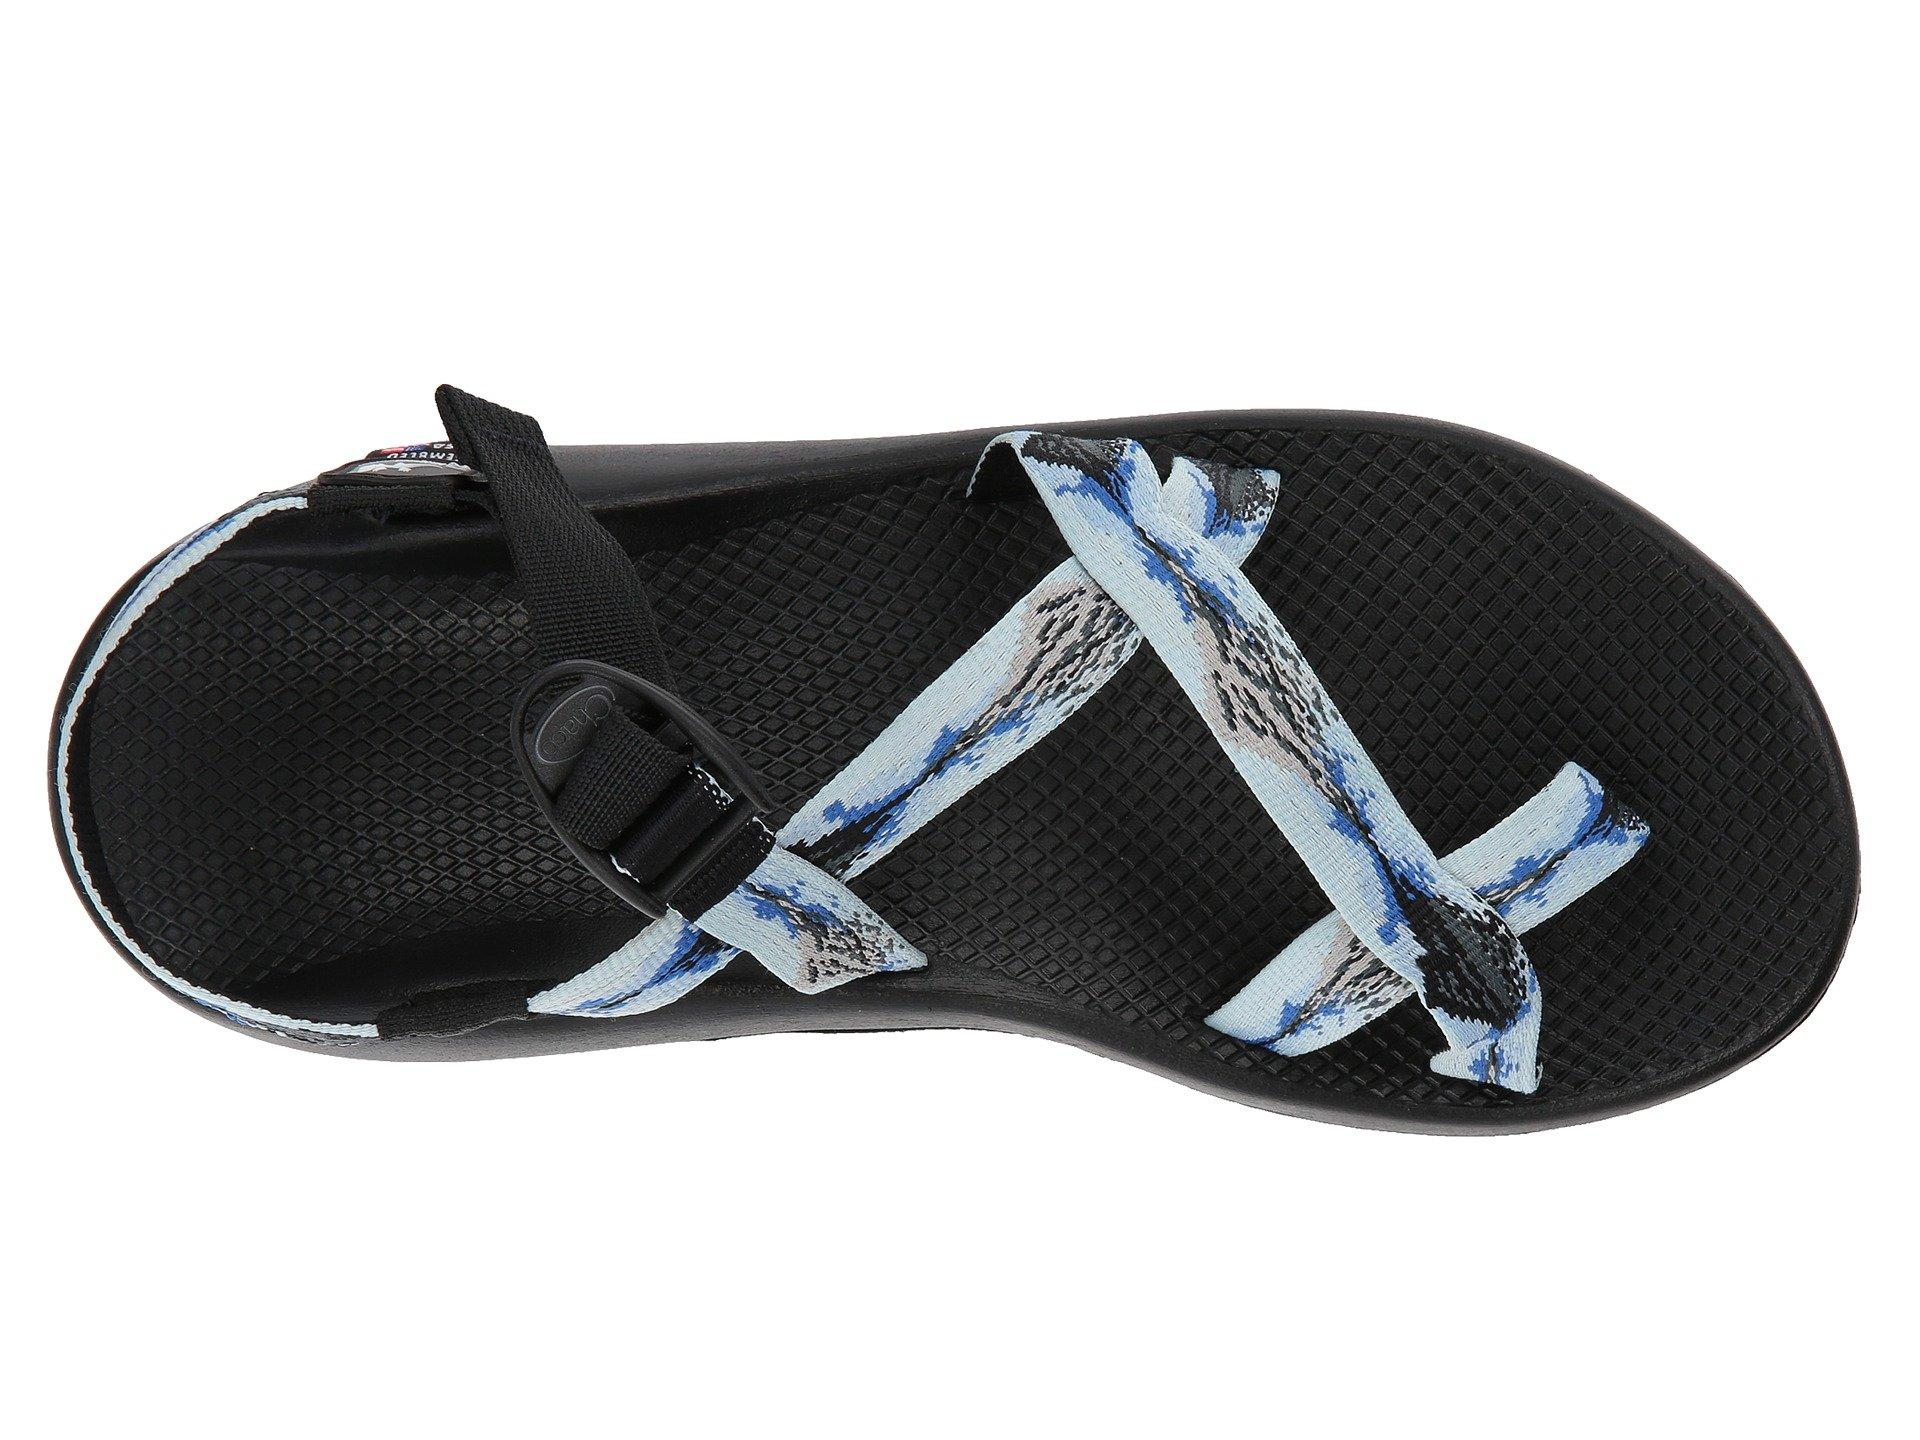 495f82ebcd4e Chaco - Black Z 2® Npf Glacier for Men - Lyst. View fullscreen